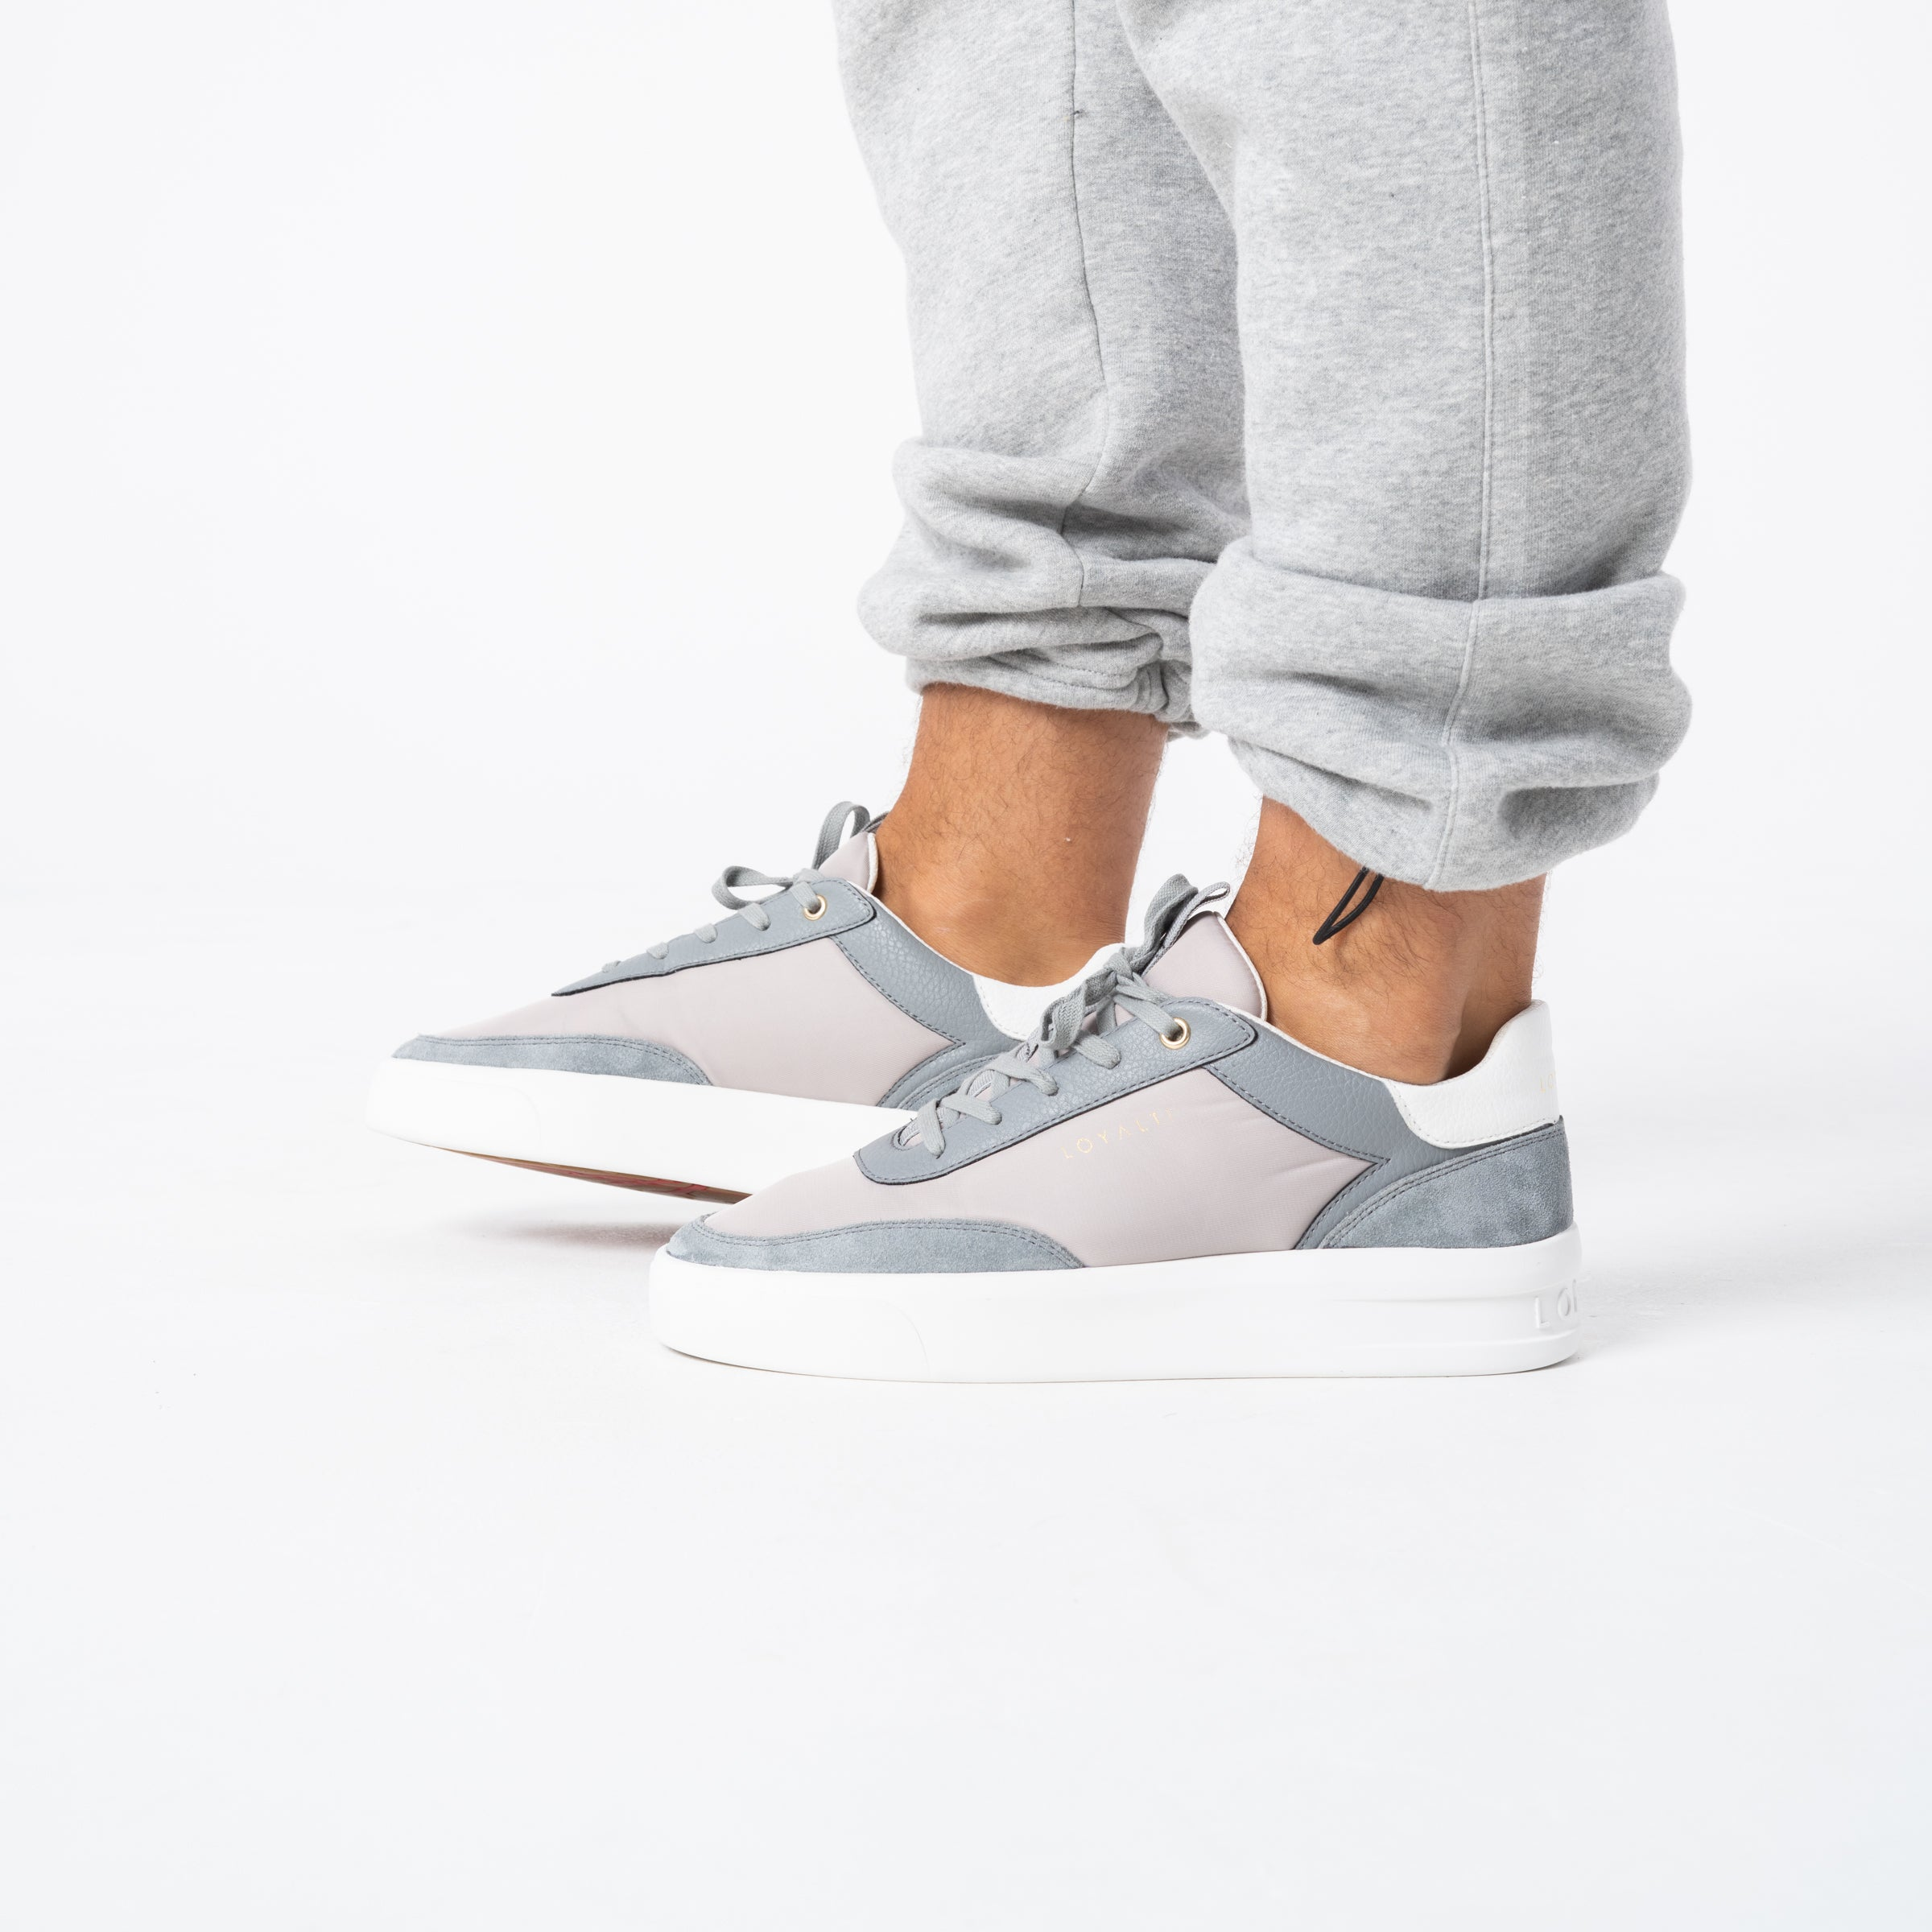 Deuces Trainer - Grey / Light Grey / White